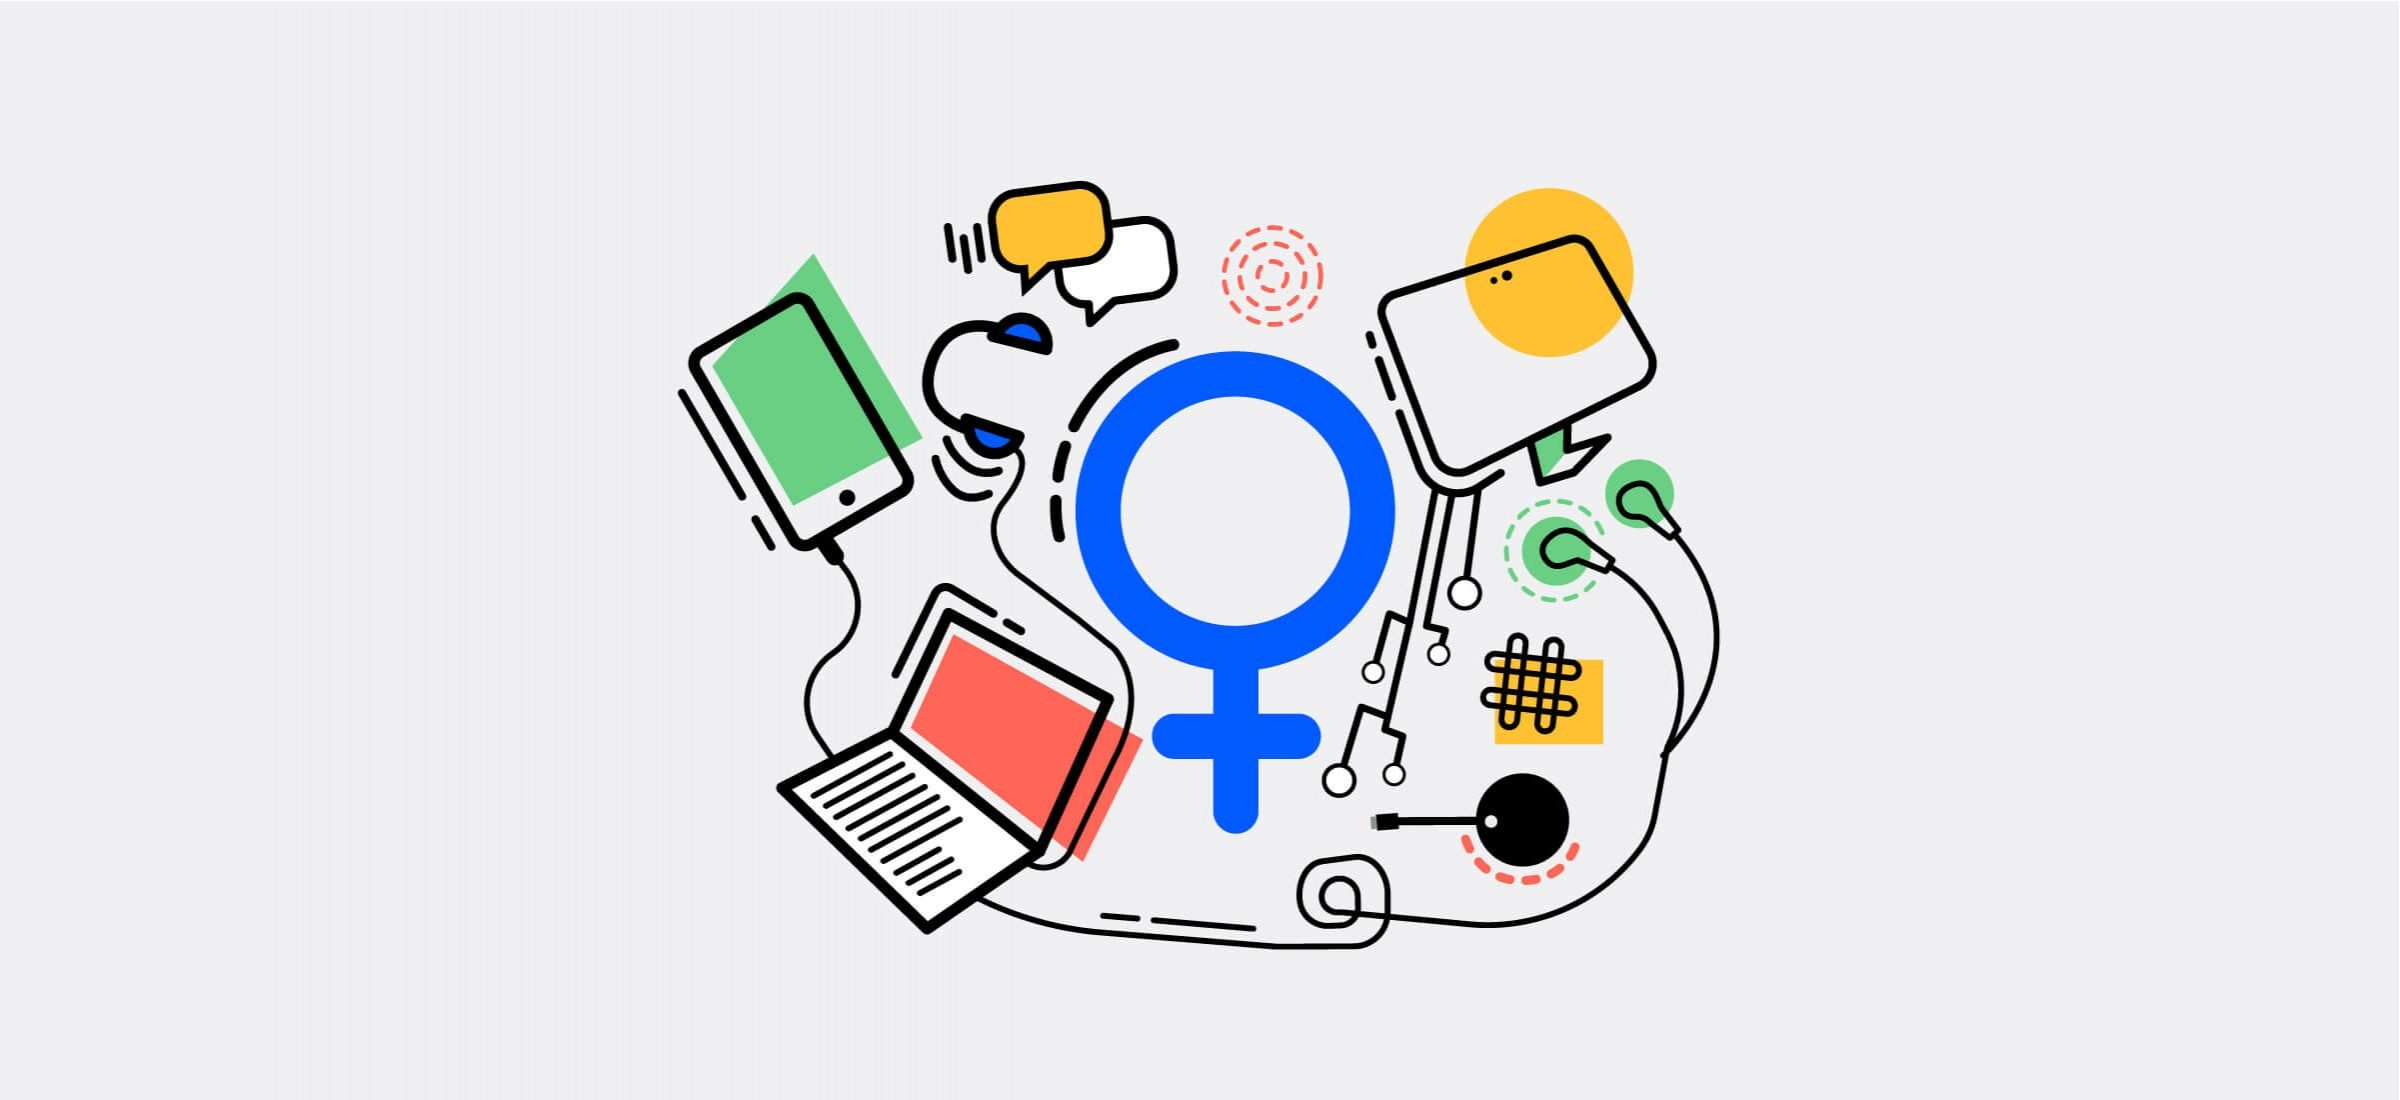 Women in tech: introducing 'salons' at your workplace